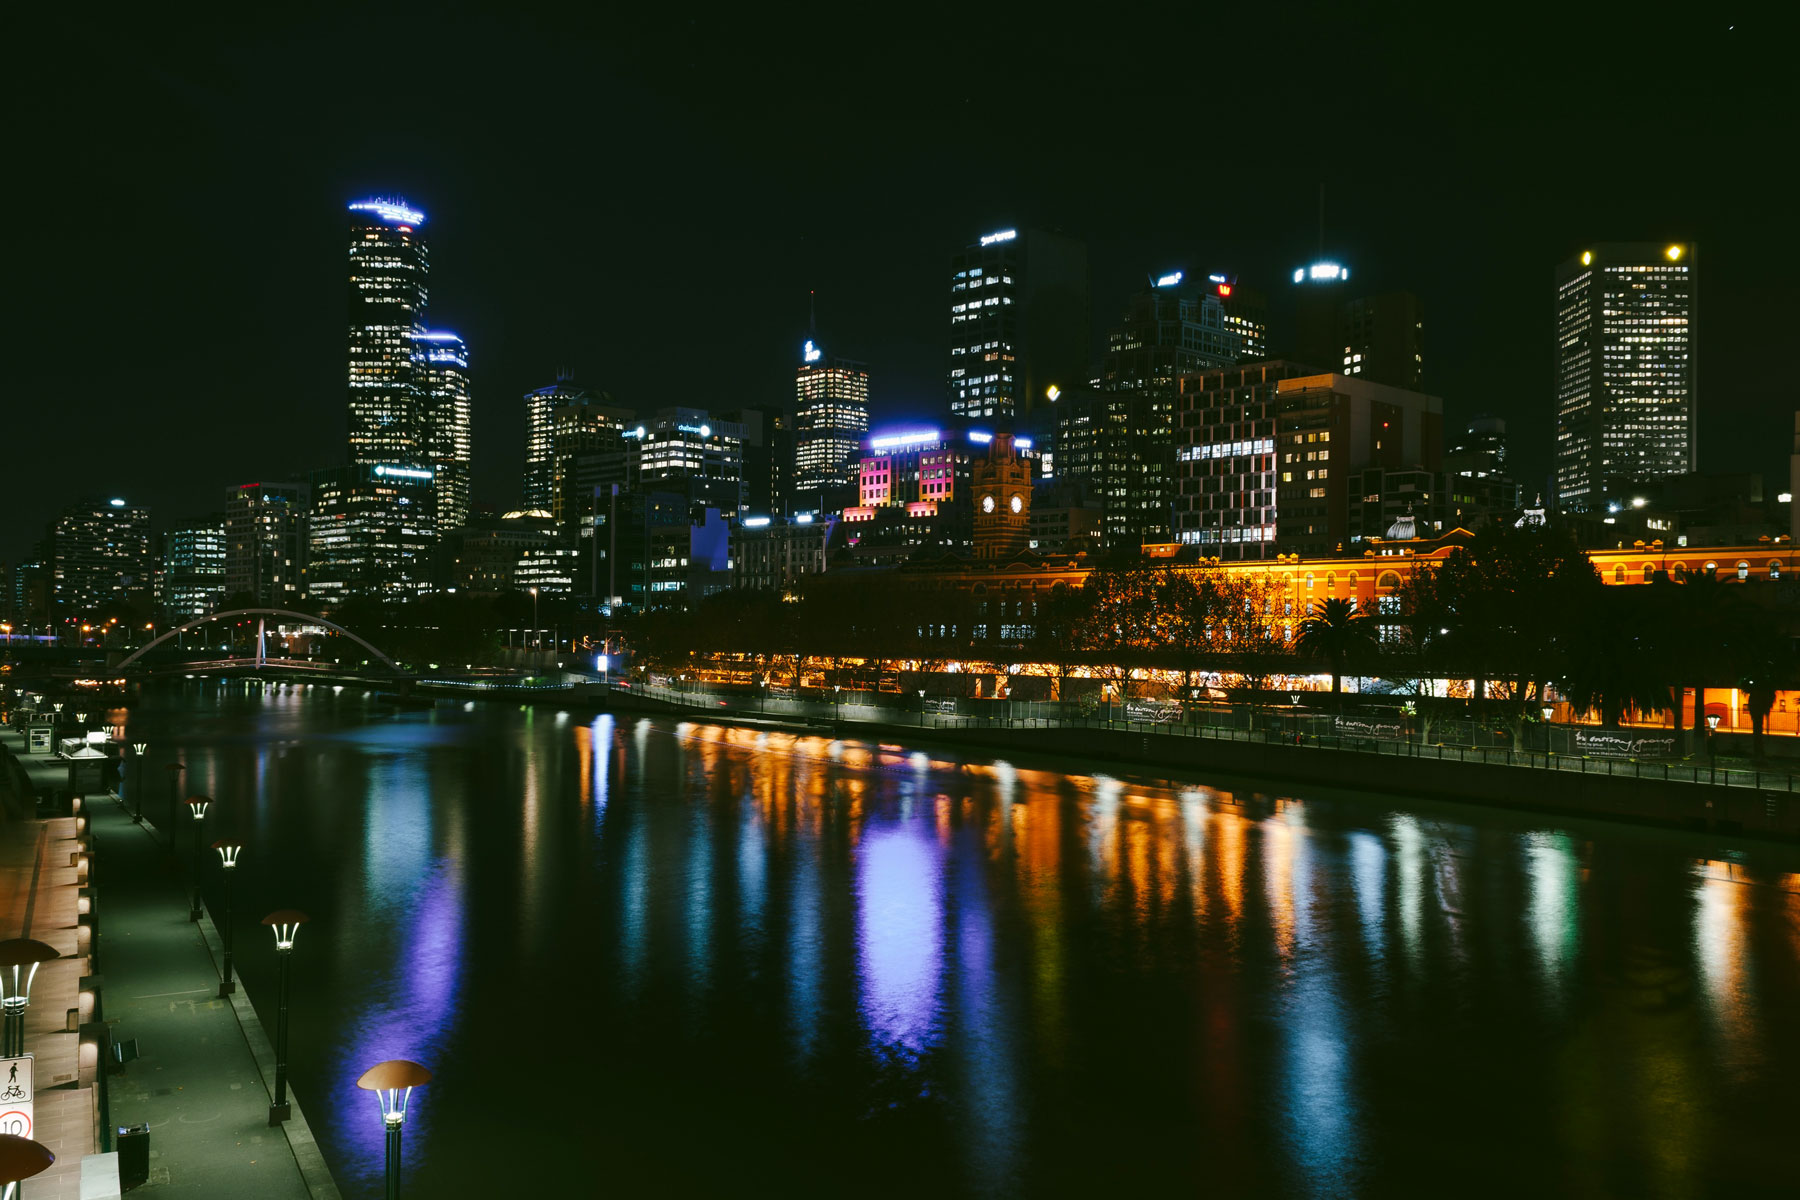 The city at night - With many watering holes open until the early hours, Melbourne's city comes alive at night. With live music or theatre every night of the week, bar hopping to partake in and late night exhibitions, Melbourne is well equipped for night owls. If the weather is on your side, grab some food to takeaway and enjoy the well-lit CBD from the banks of the Yarra, or if you prefer, get cosy in one of the many excellent wine bars.